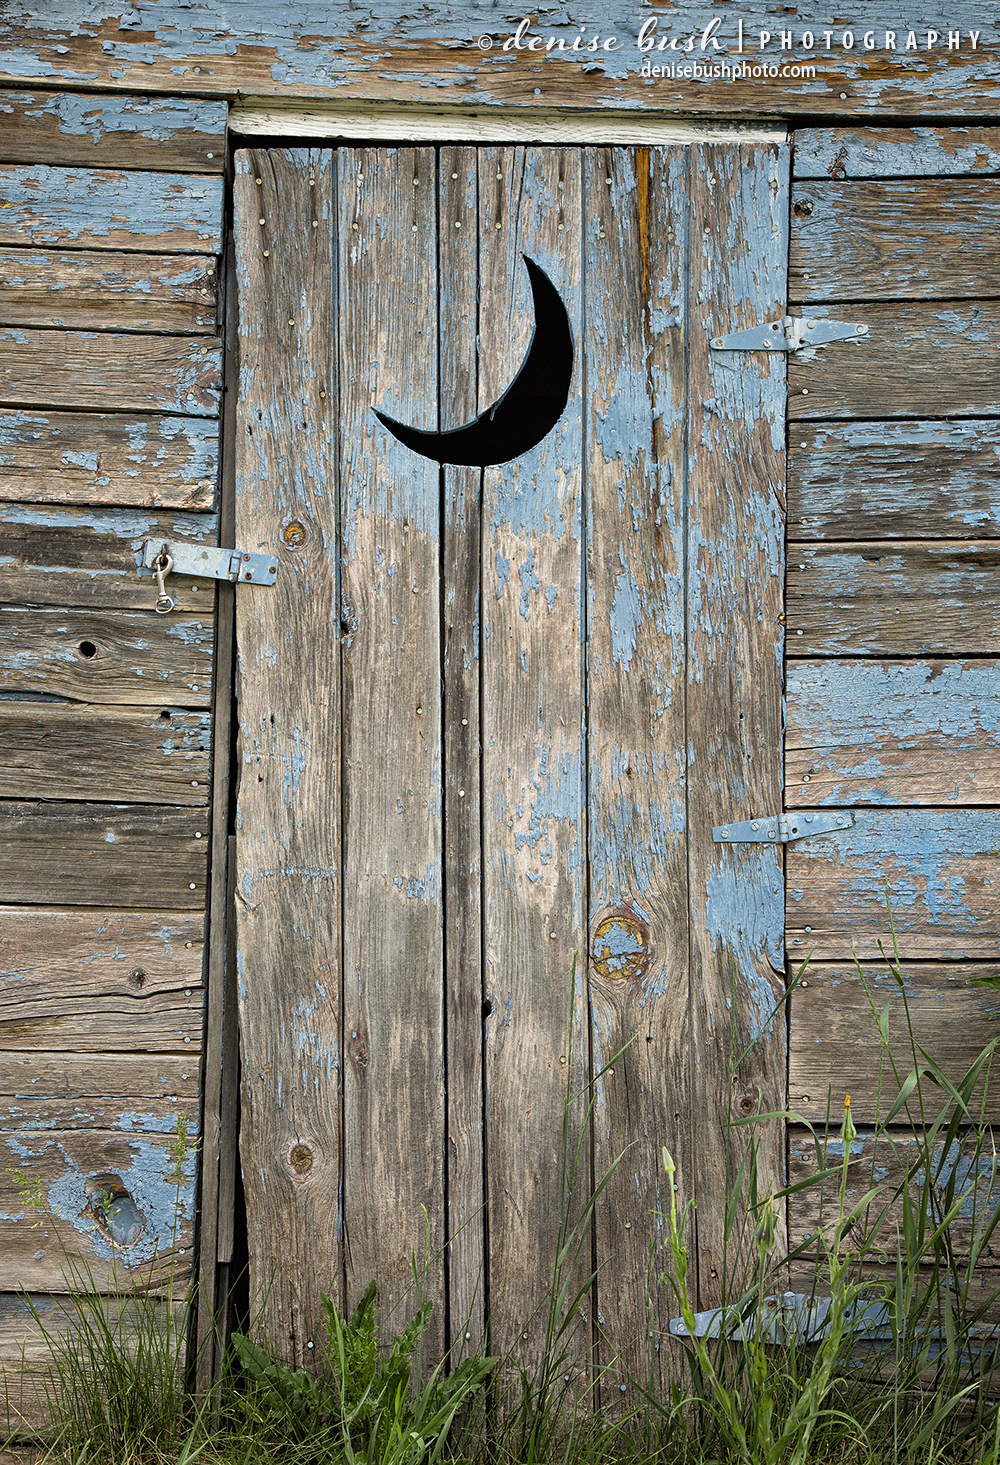 An old, weathered outhouse door comes complete with the standard moon cutout.